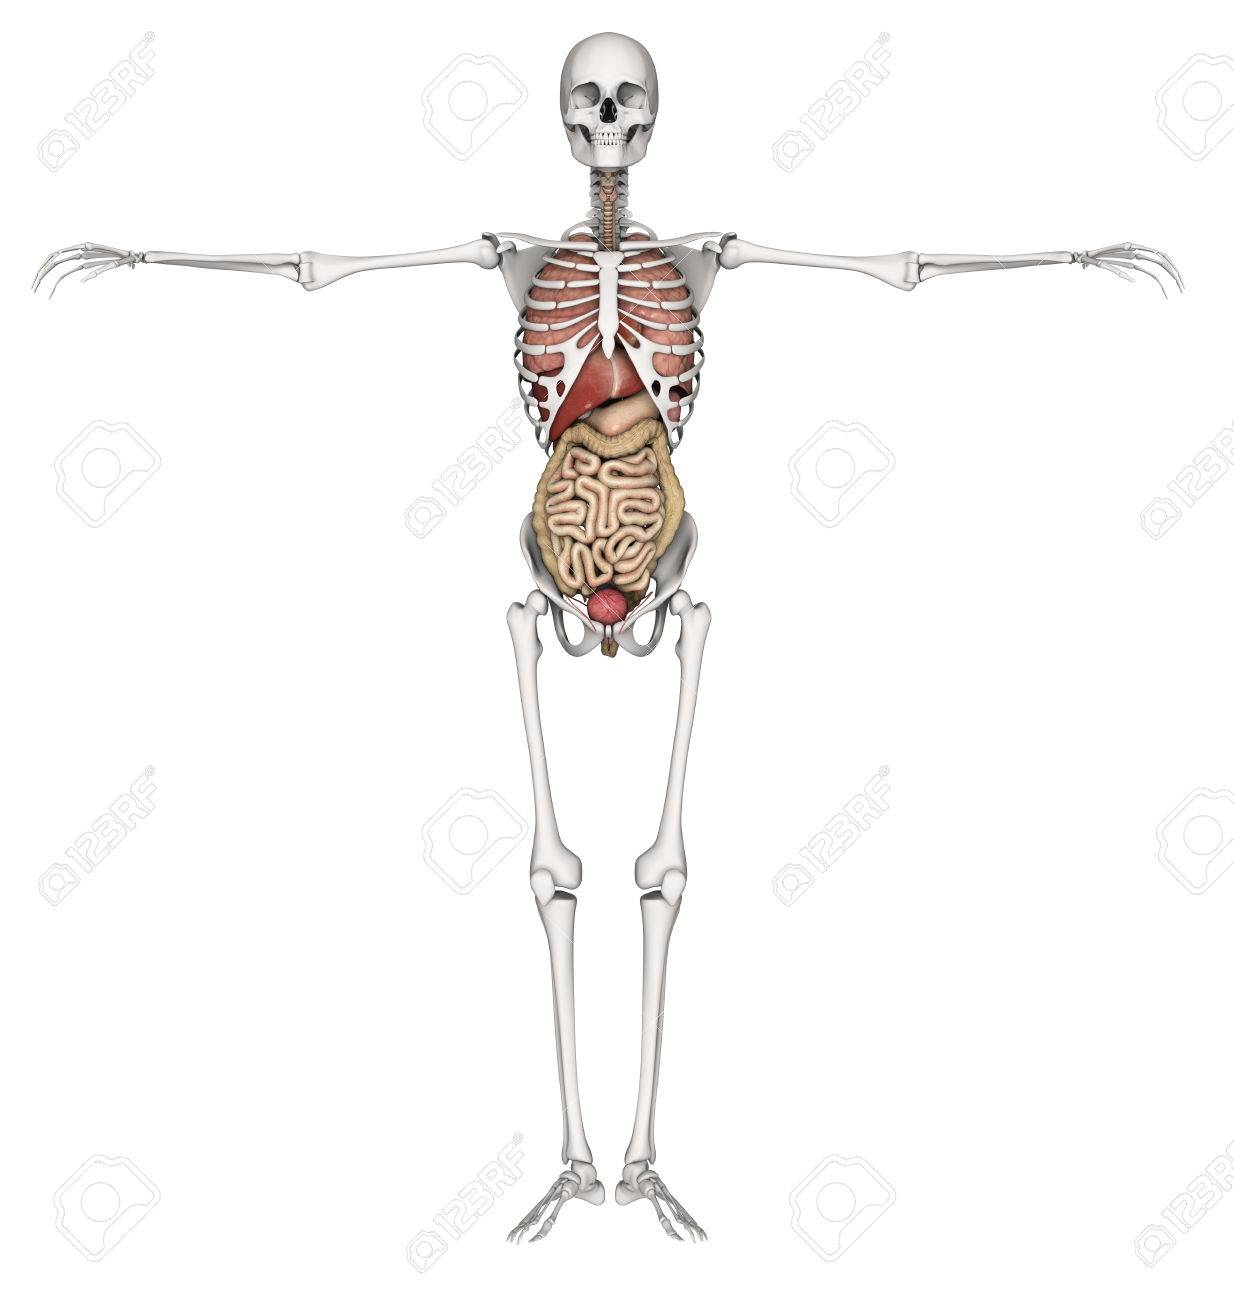 3D Render Of A Skeleton With Internal Organs Exposed Stock Photo ...